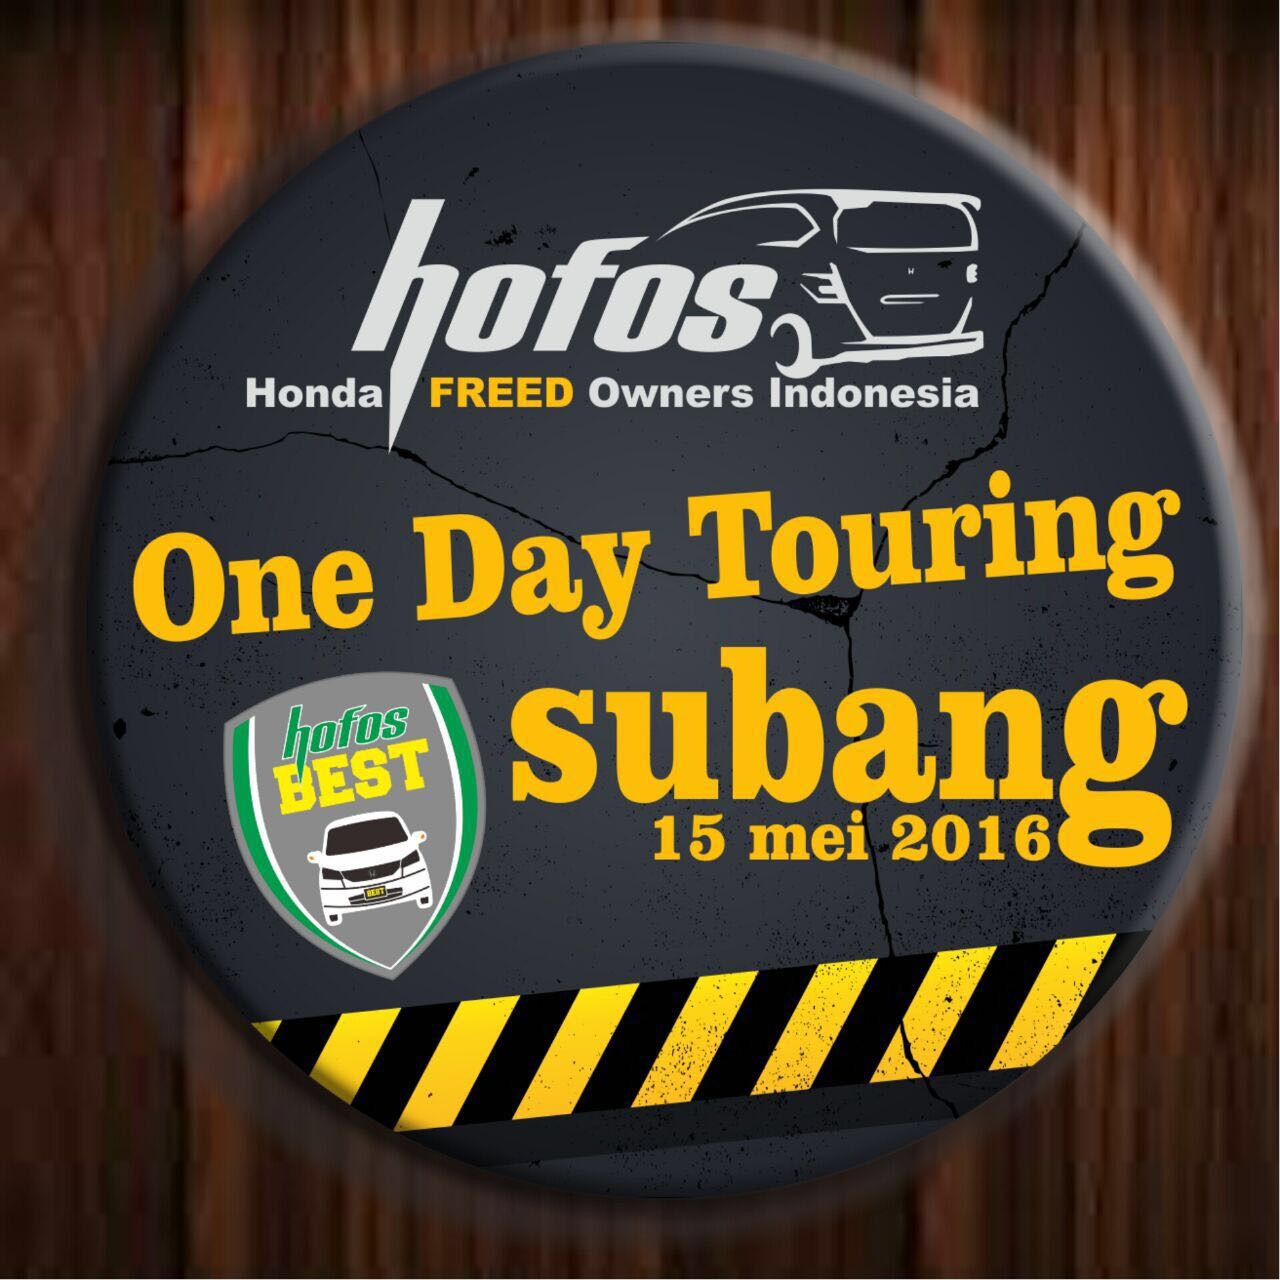 One Day Touring HOFOS BEST ke Subang